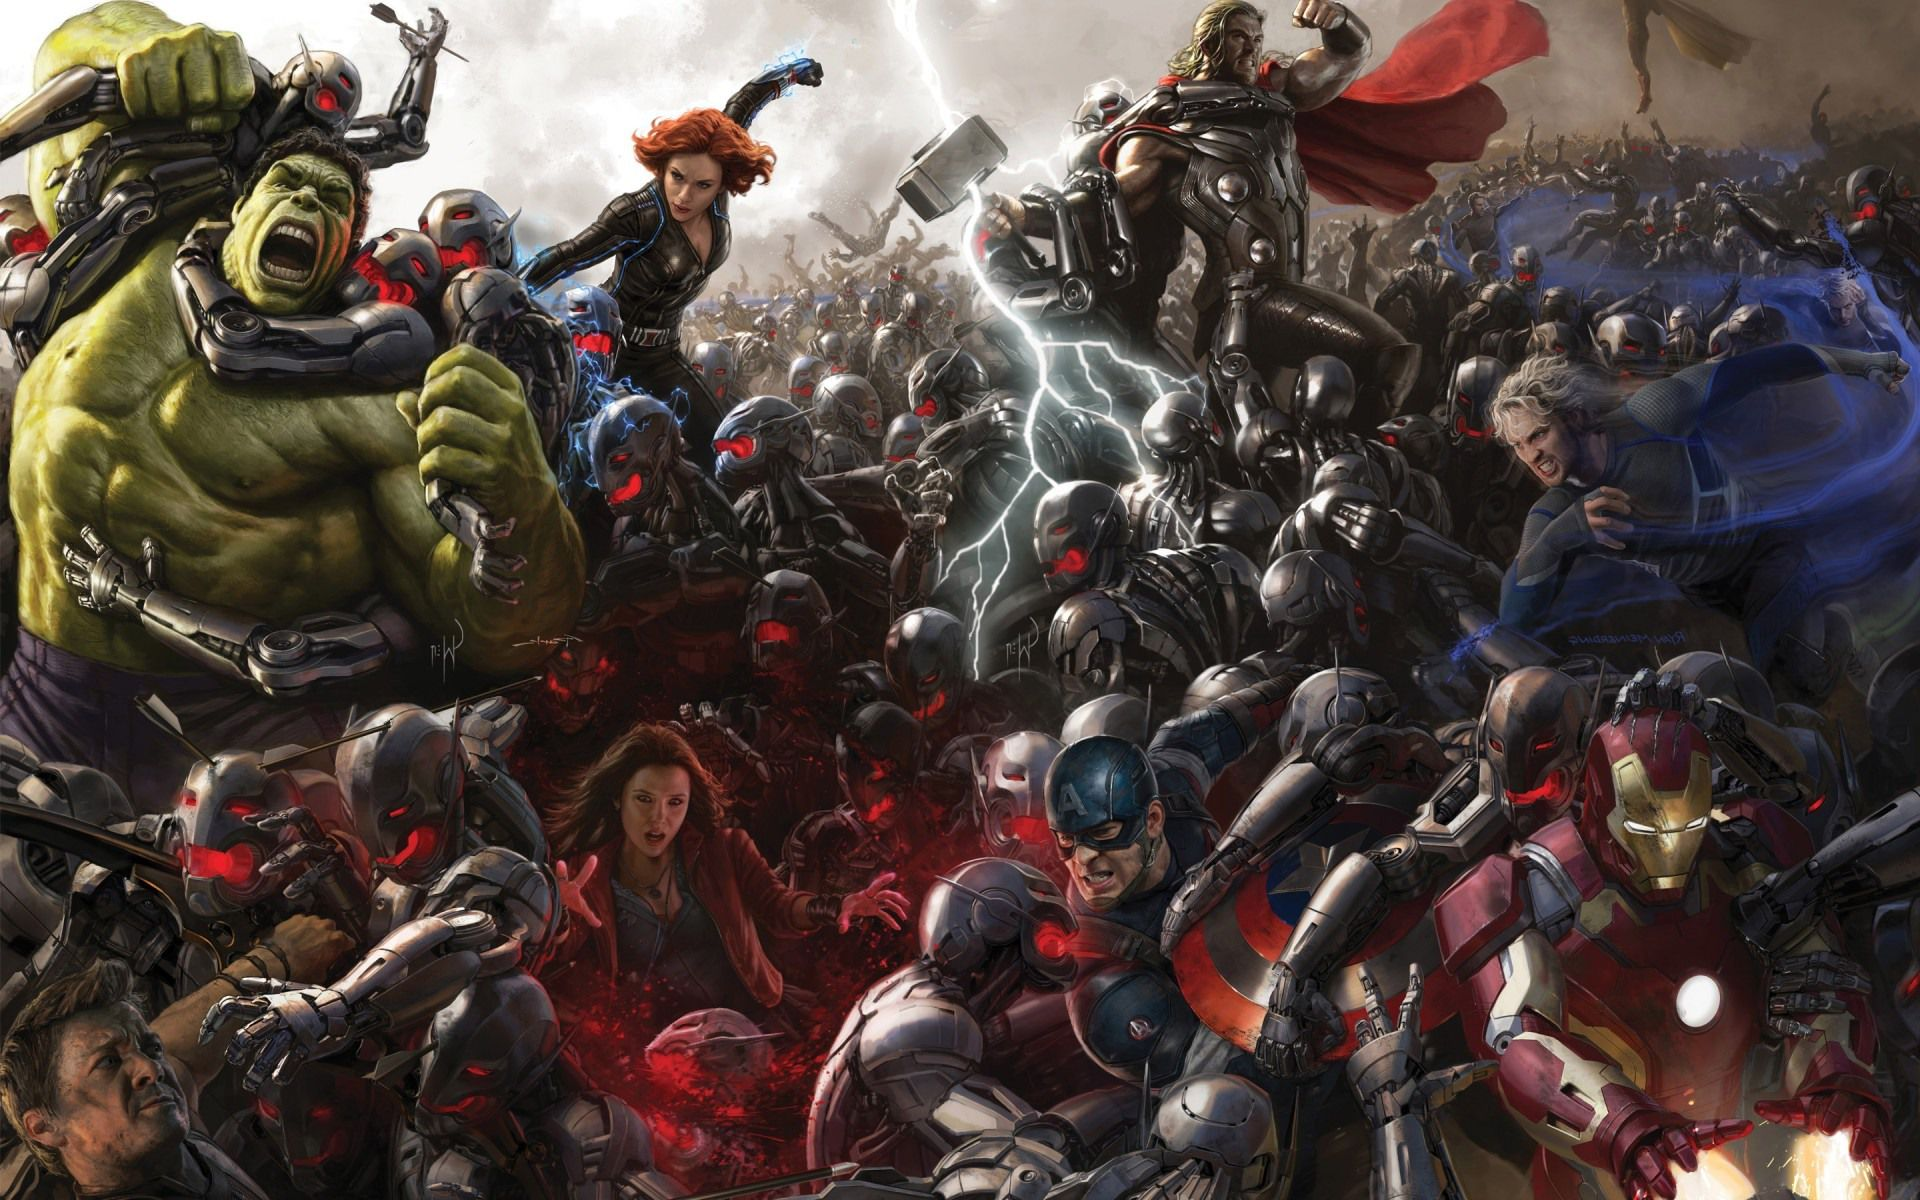 Avengers Age of Ultron 2015 Wallpaper Desktop   HD Wallpapers 1920x1200